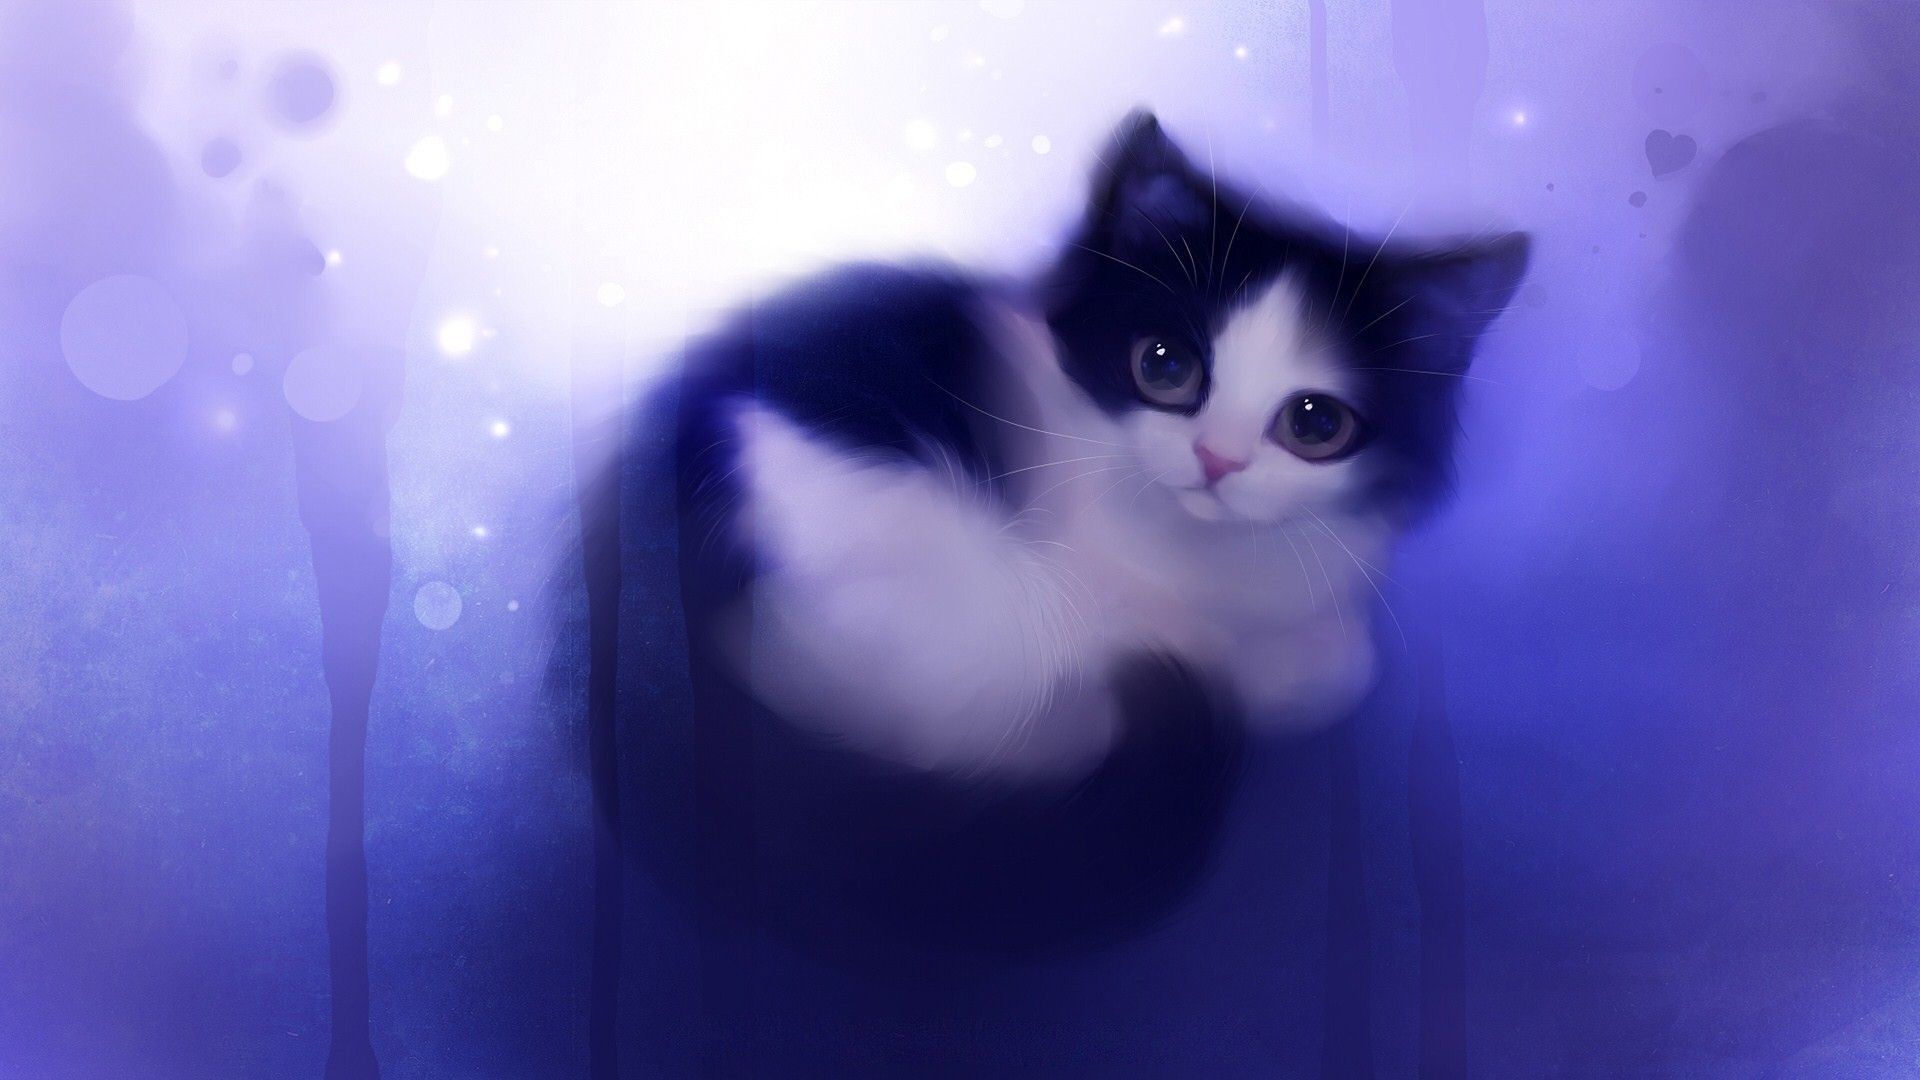 Adorable Cute Anime Cats Wallpaper In 2020 With Images Cute